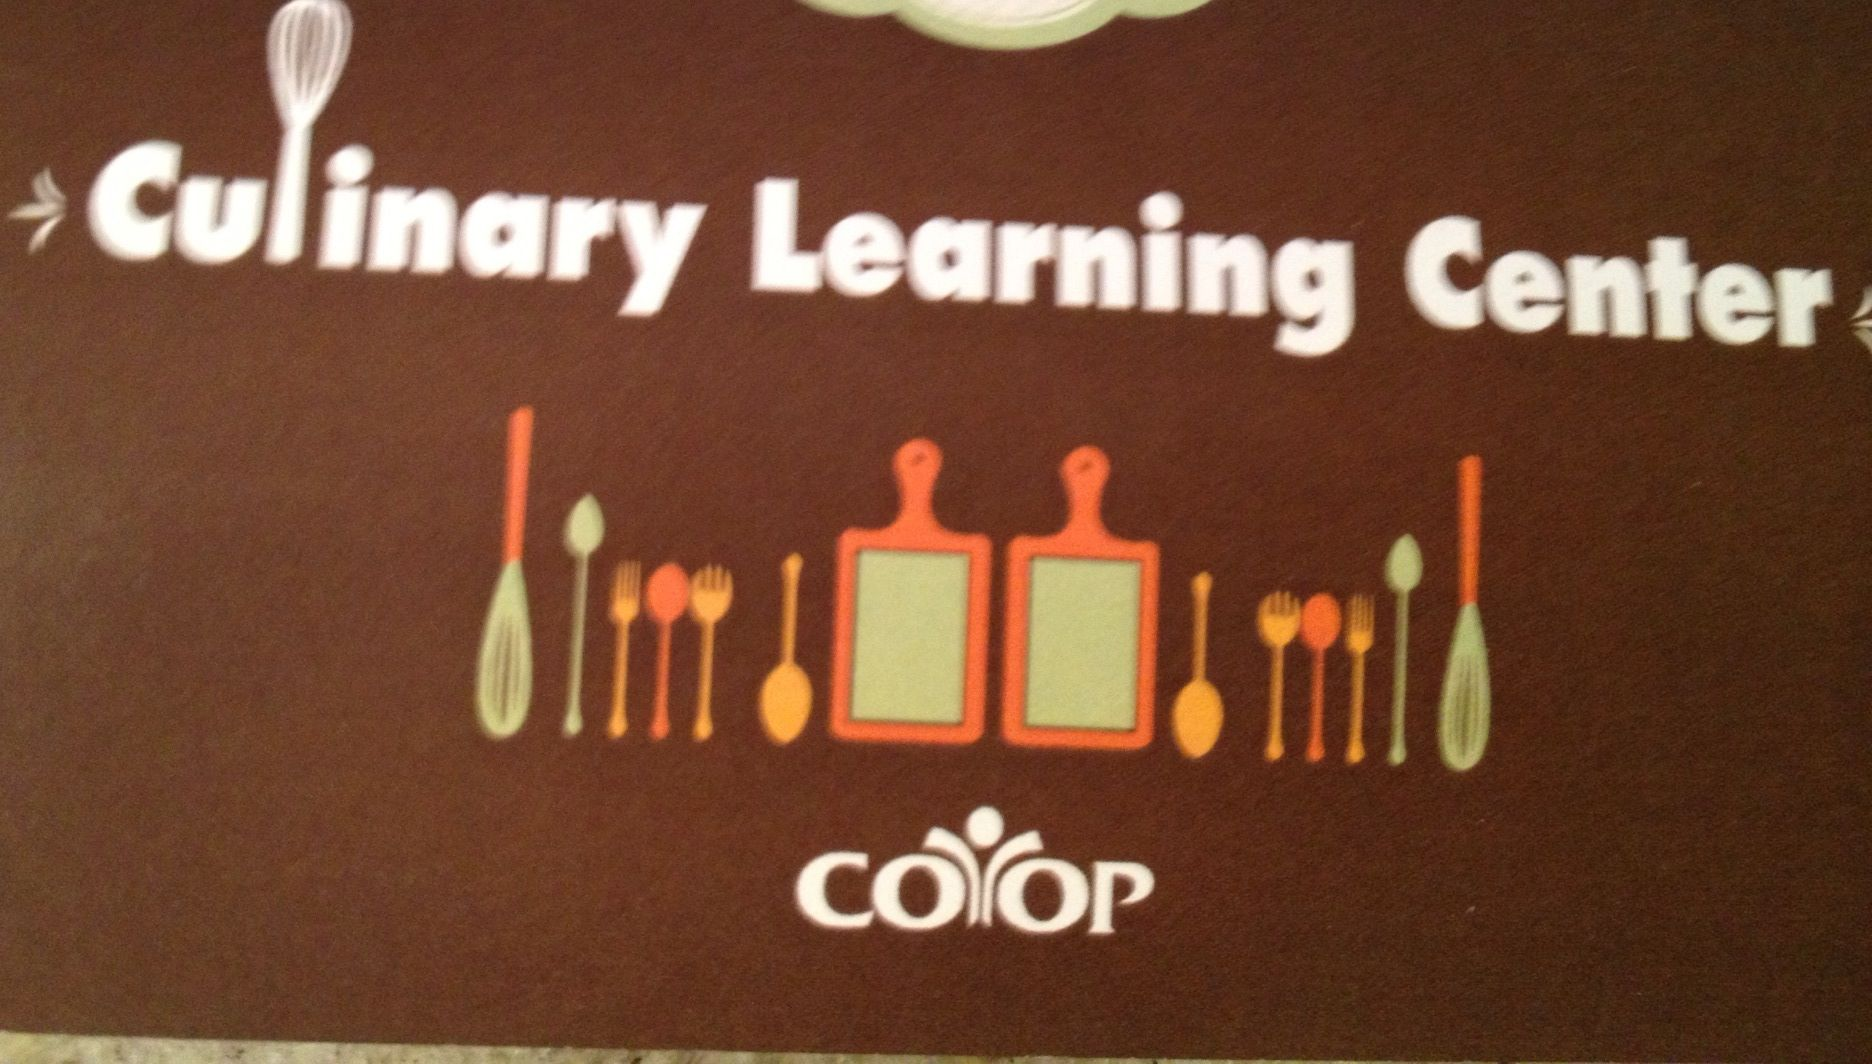 I love the Coop Culinary Learning Center